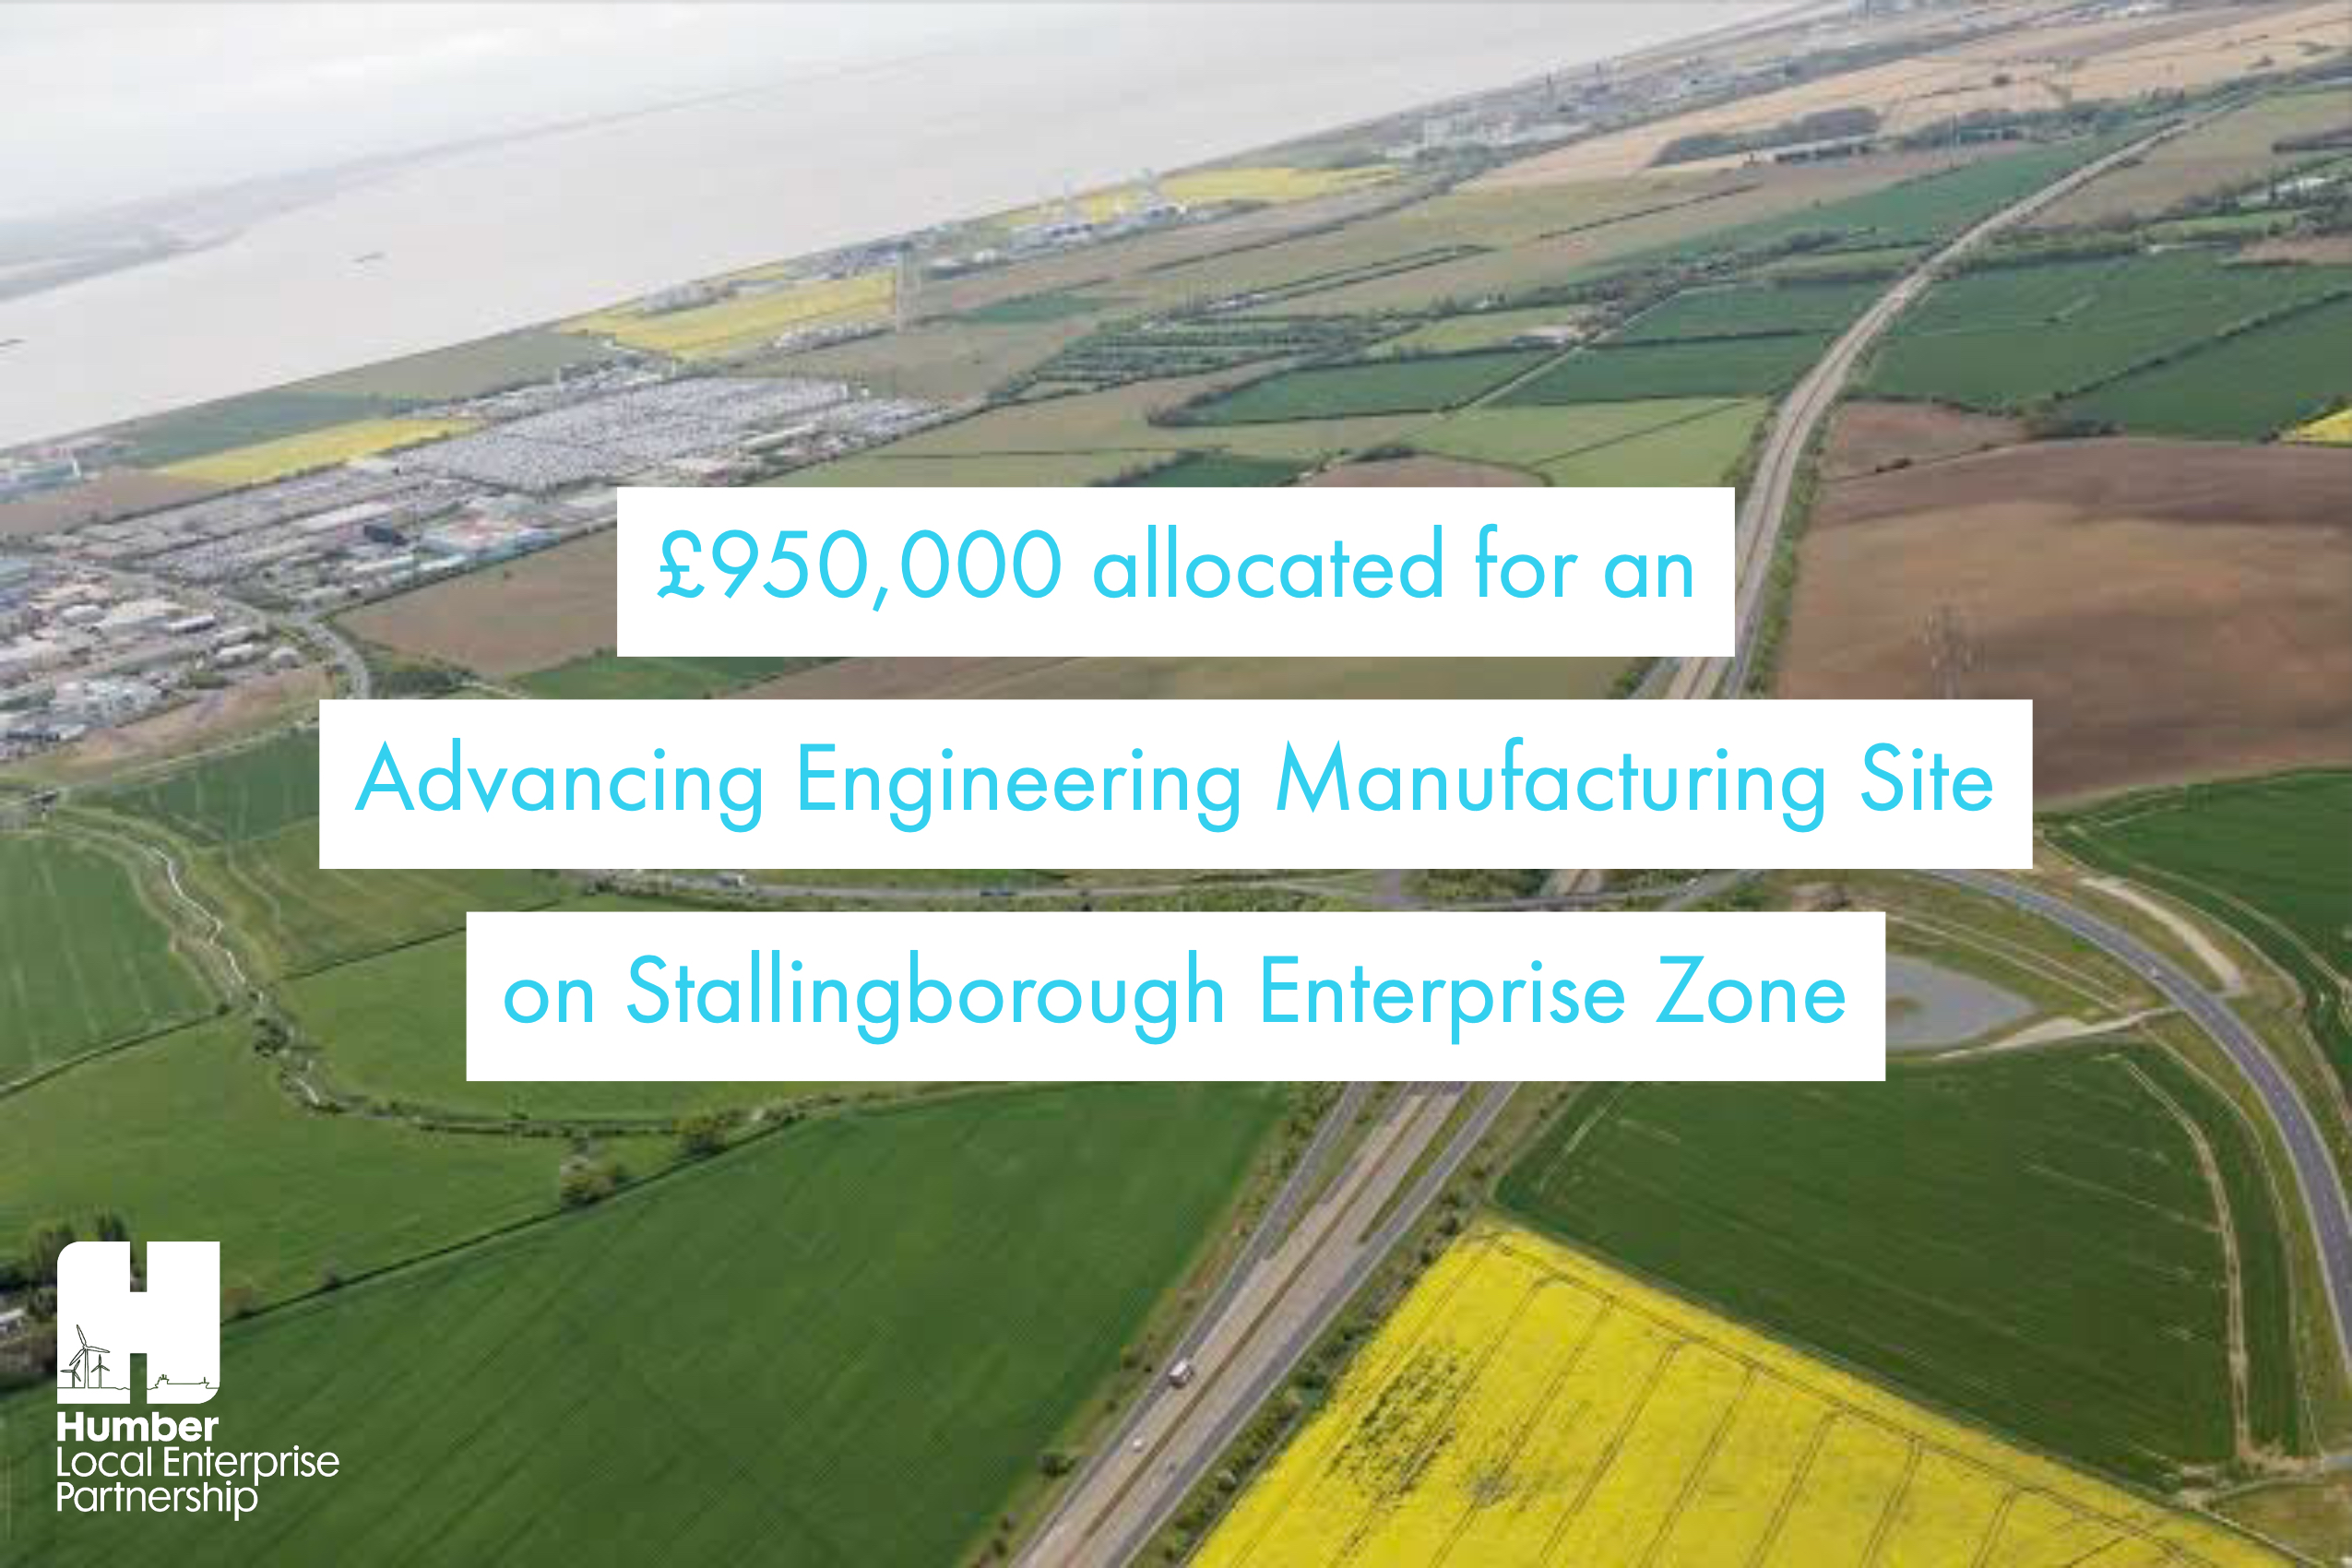 Almost £1m in funding allocated for Advanced Manufacturing